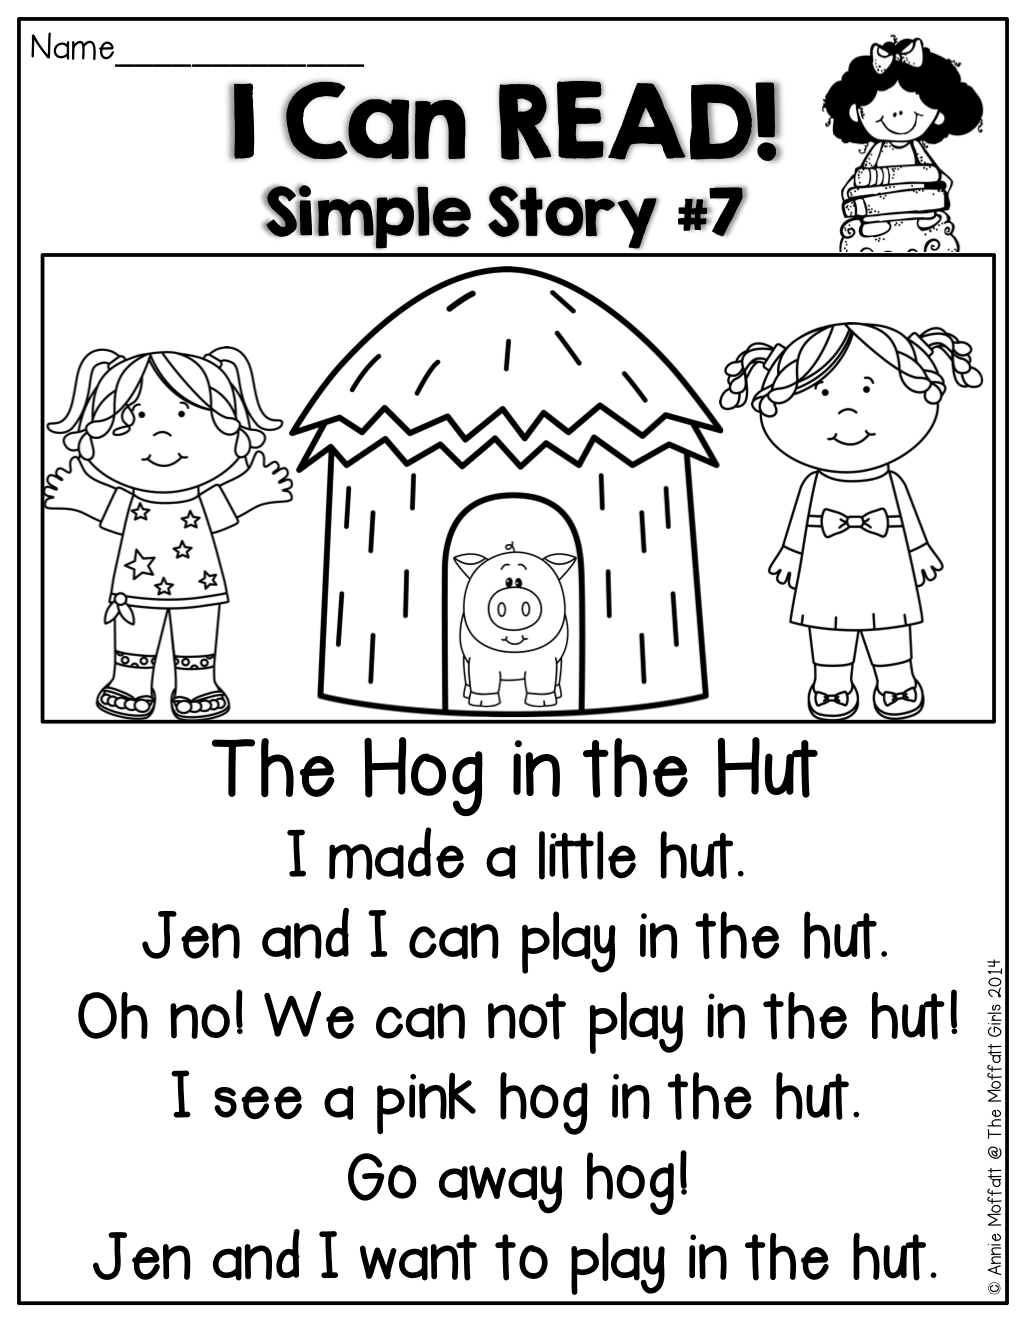 I Can Read Simple Stories Fun Little Stories That Kids